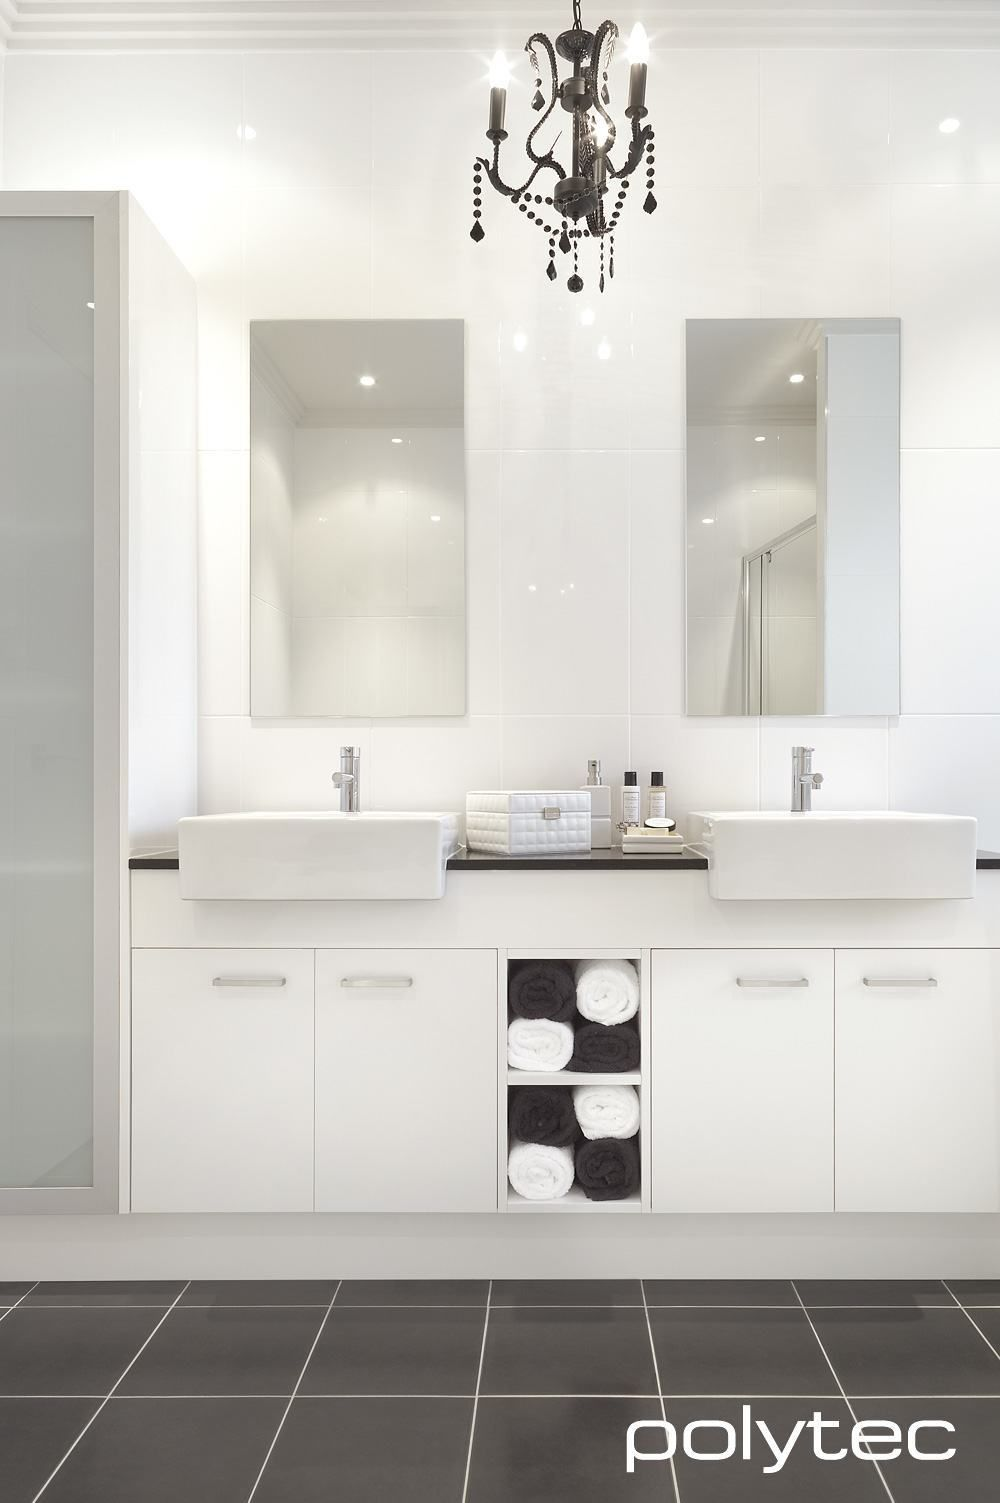 Doors in THERMOLAMINATED 18mm Manchester Classic White Gloss. Doors ...